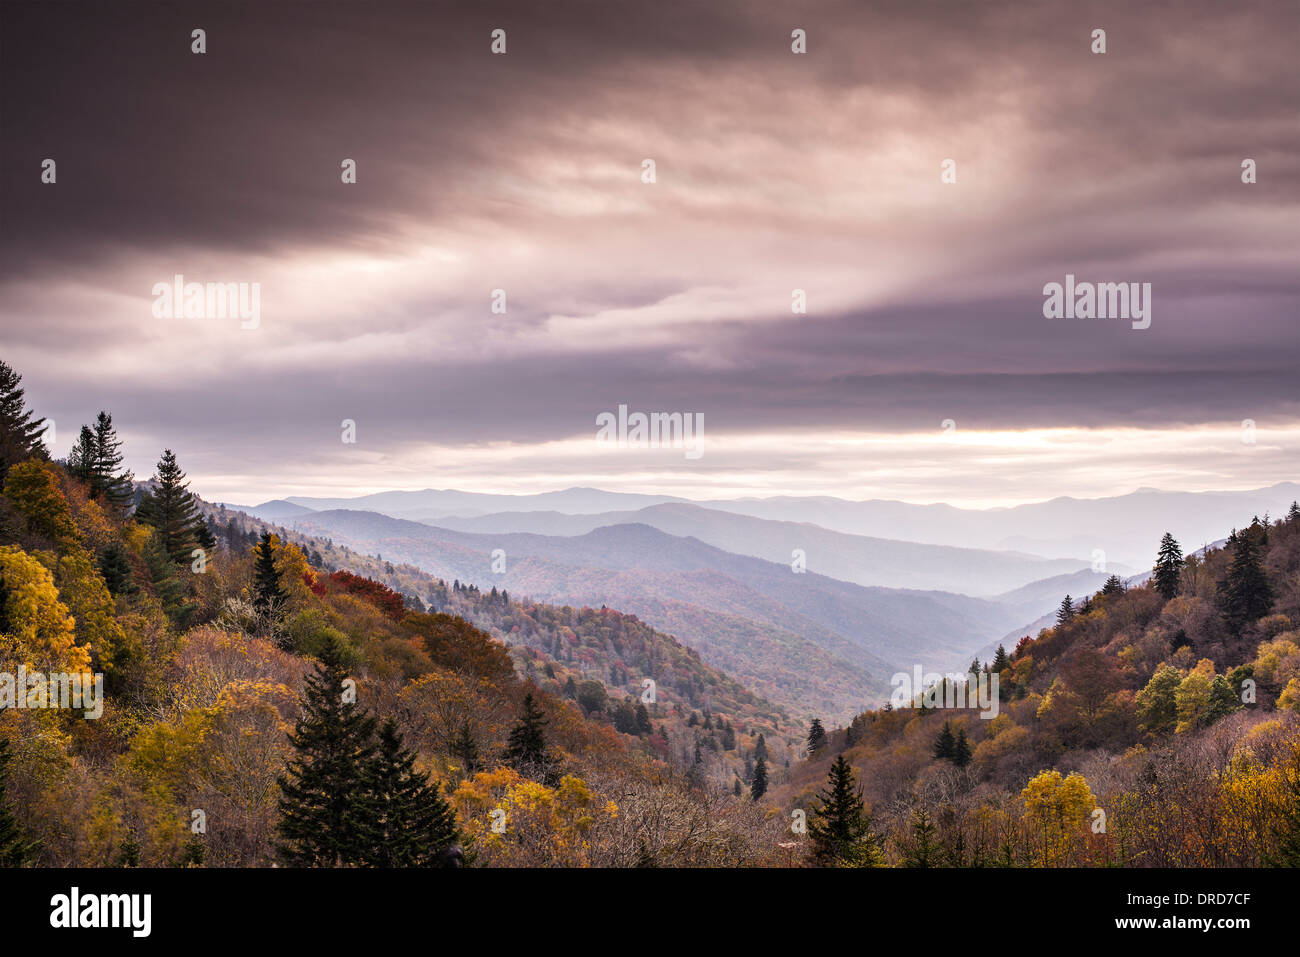 Smoky Mountains National Park on a cloudy autumn morning. - Stock Image